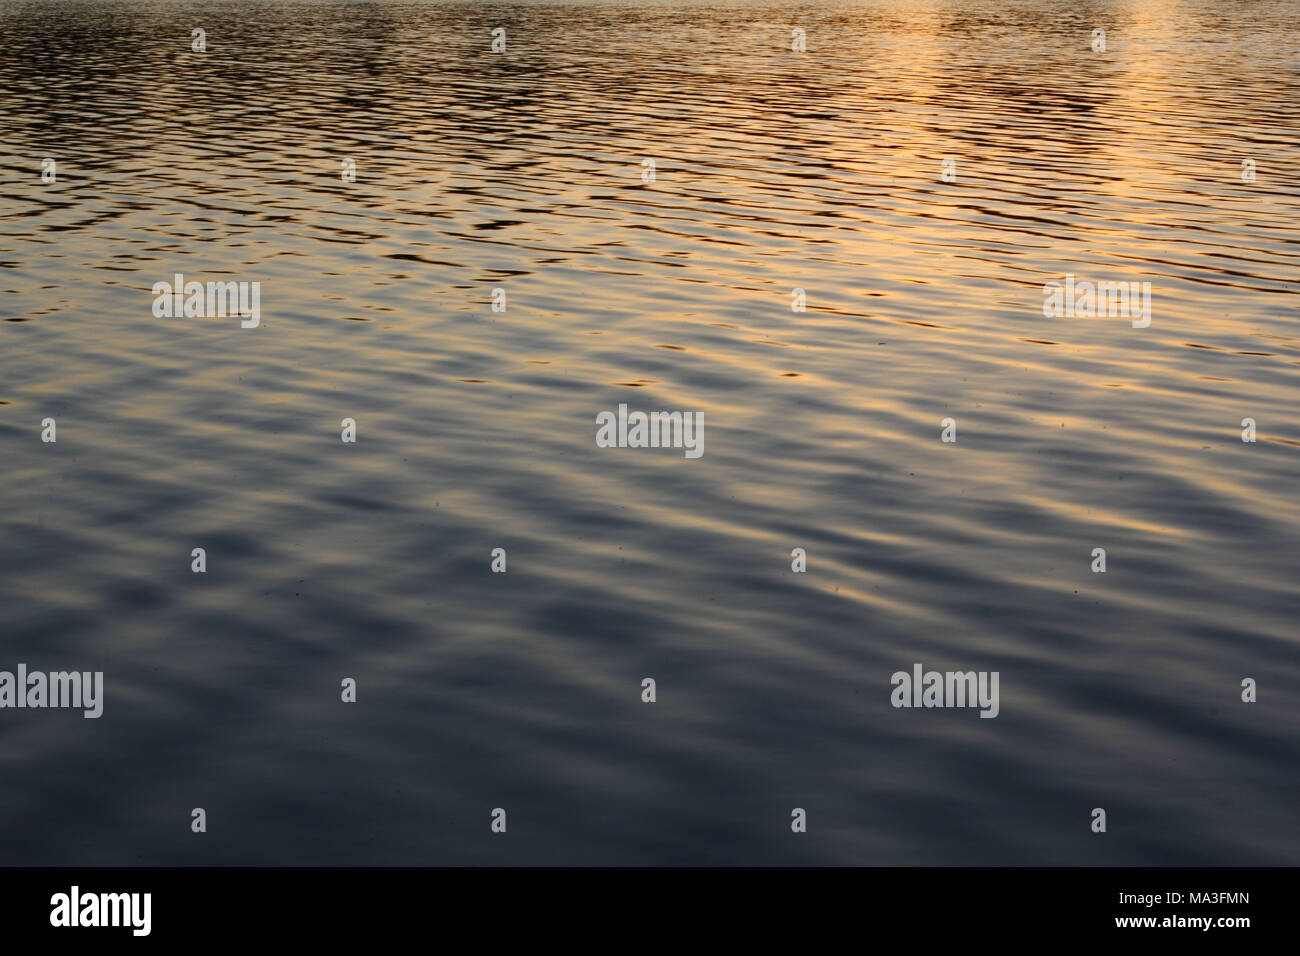 Gentle waves on reflecting water surface - Stock Image